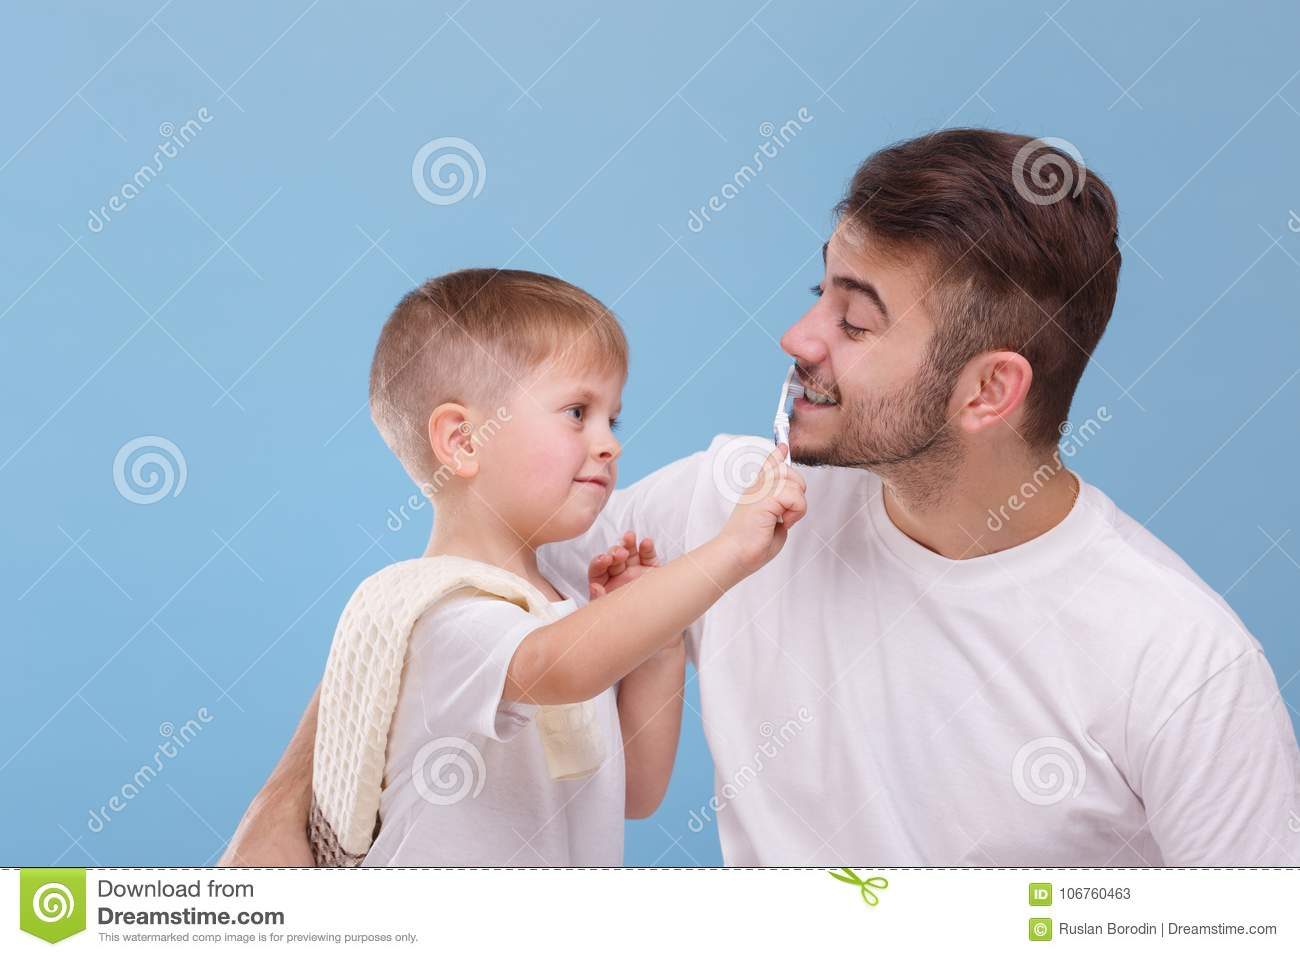 A father with a small son, a small boy will brush his daddy teeth with a toothbrush. On a blue background.